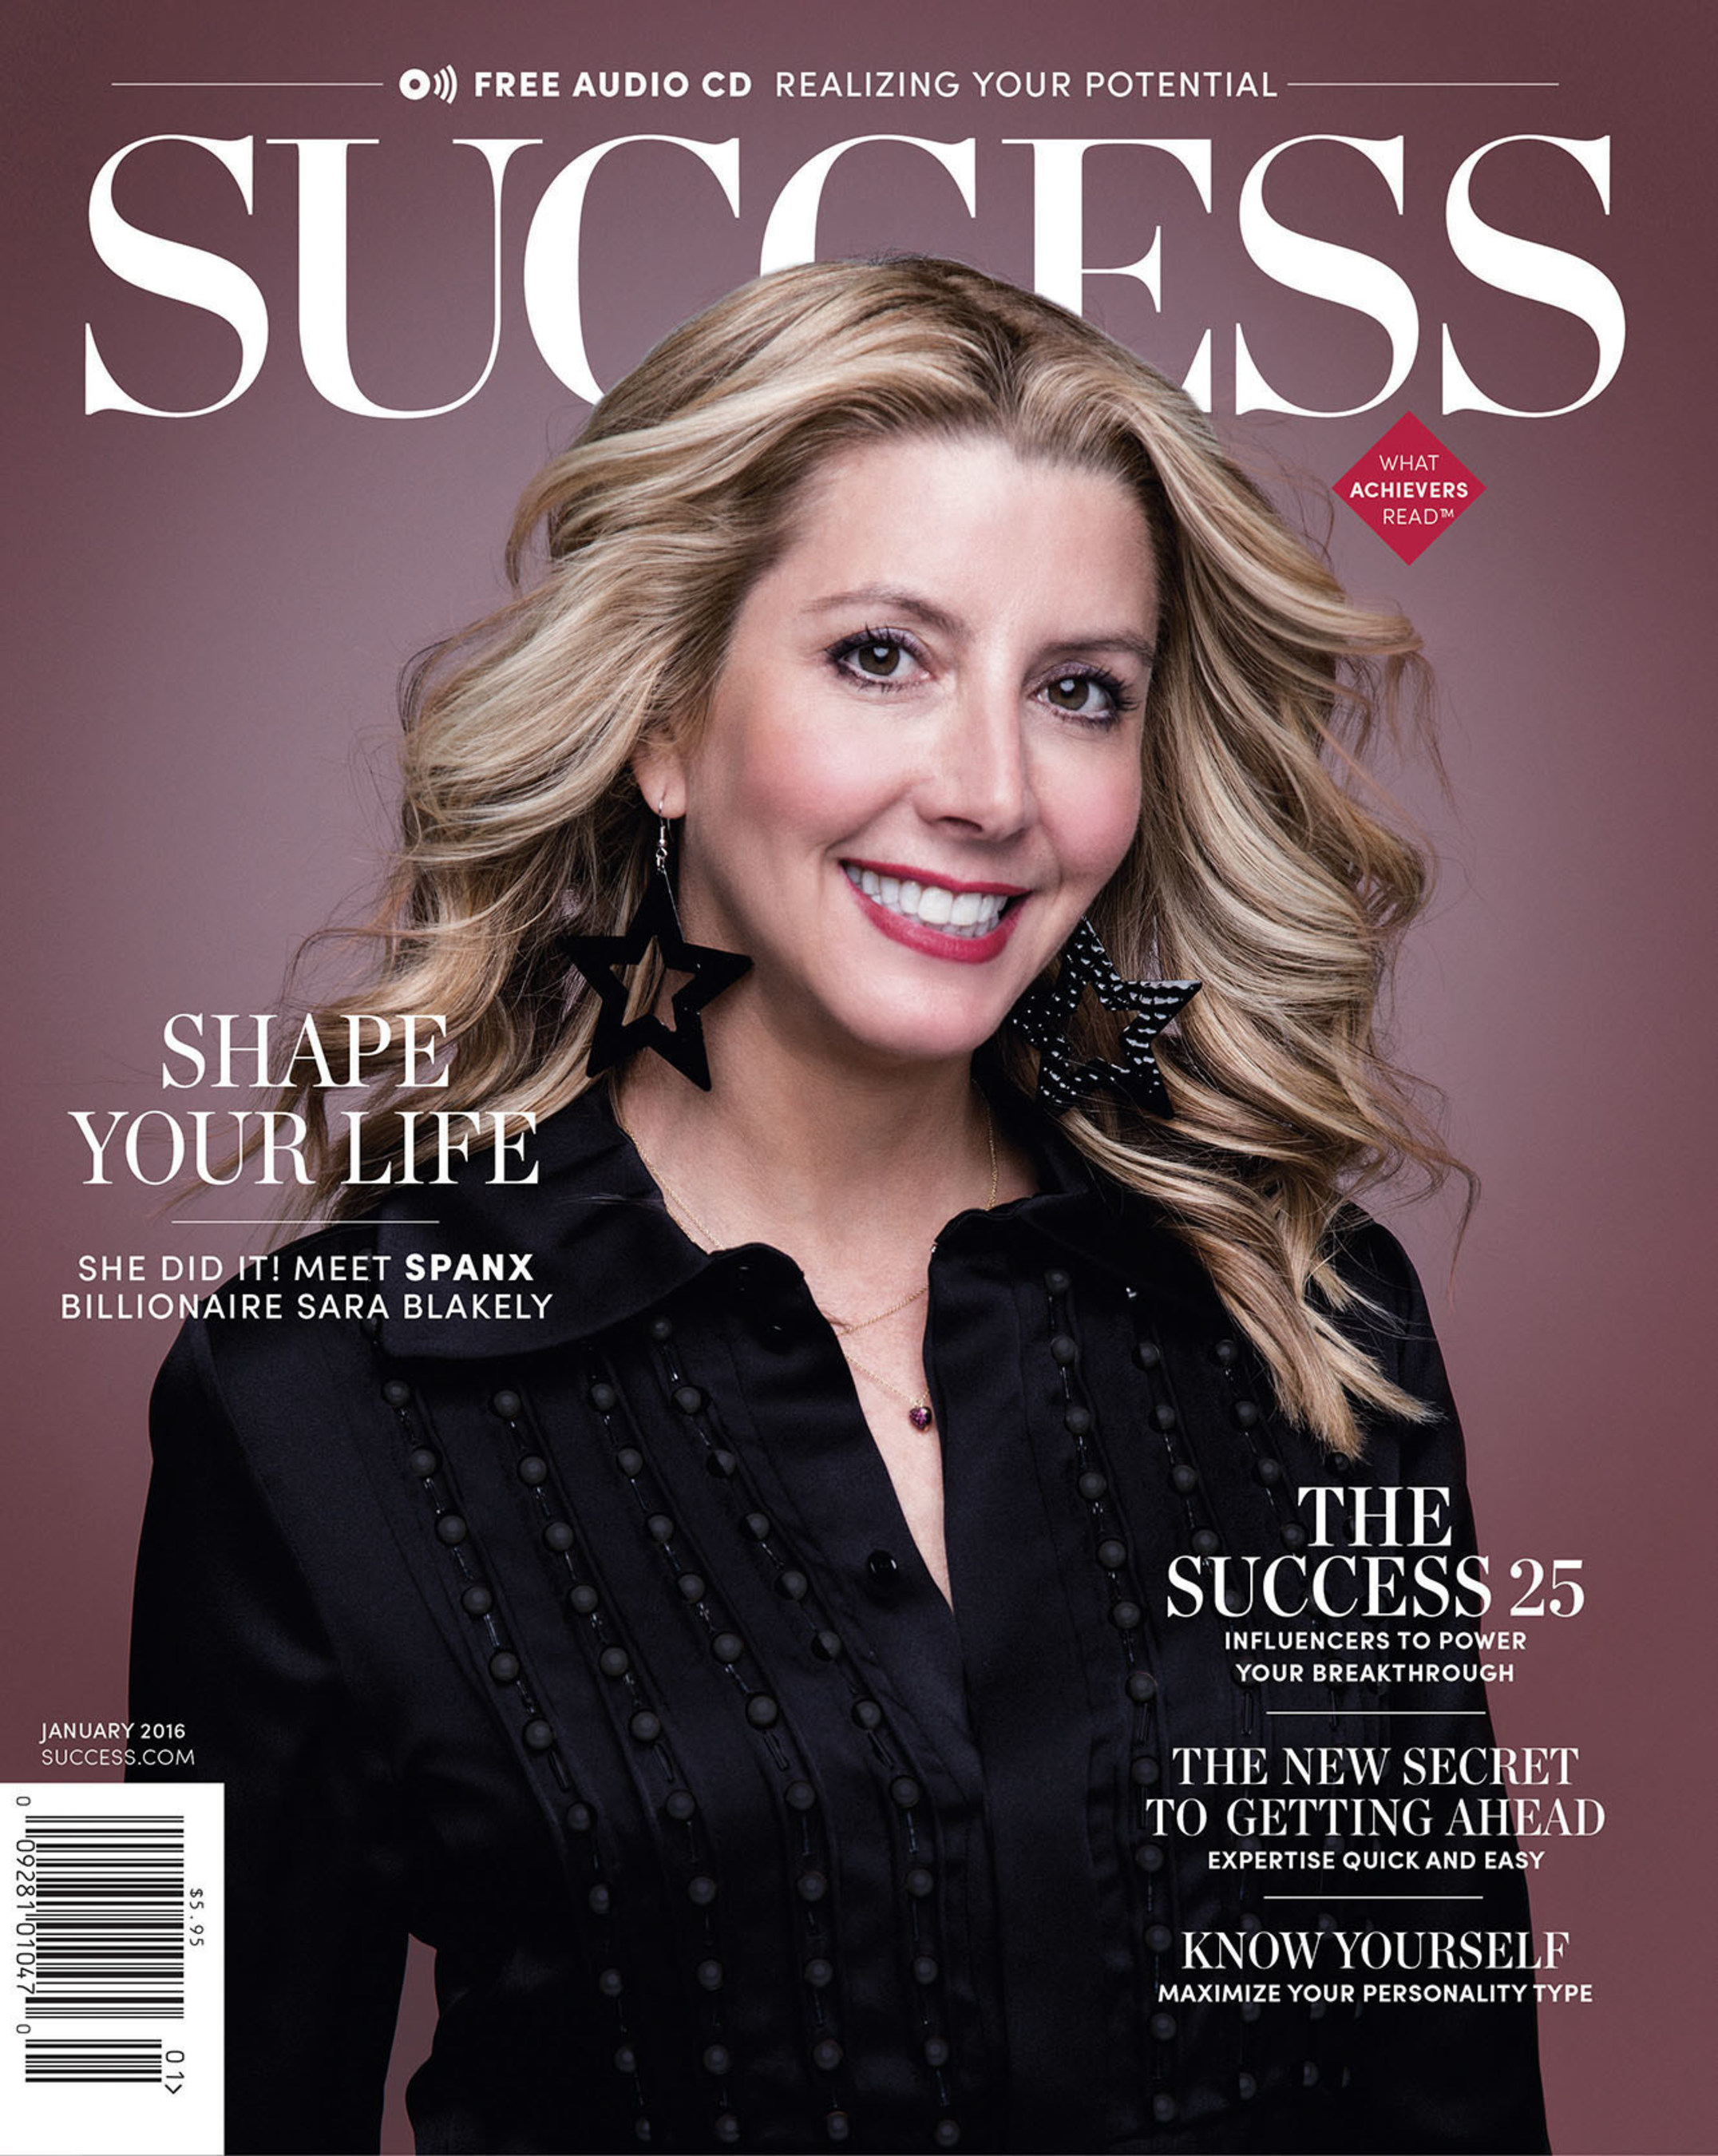 The SUCCESS January issue spotlights the best in personal development, including the secrets behind Spanx founder Sara Blakely's billion dollar empire, the SUCCESS 25, Drew Carey's dedication to personal growth, and a number of additional tools to help make this the best year yet!